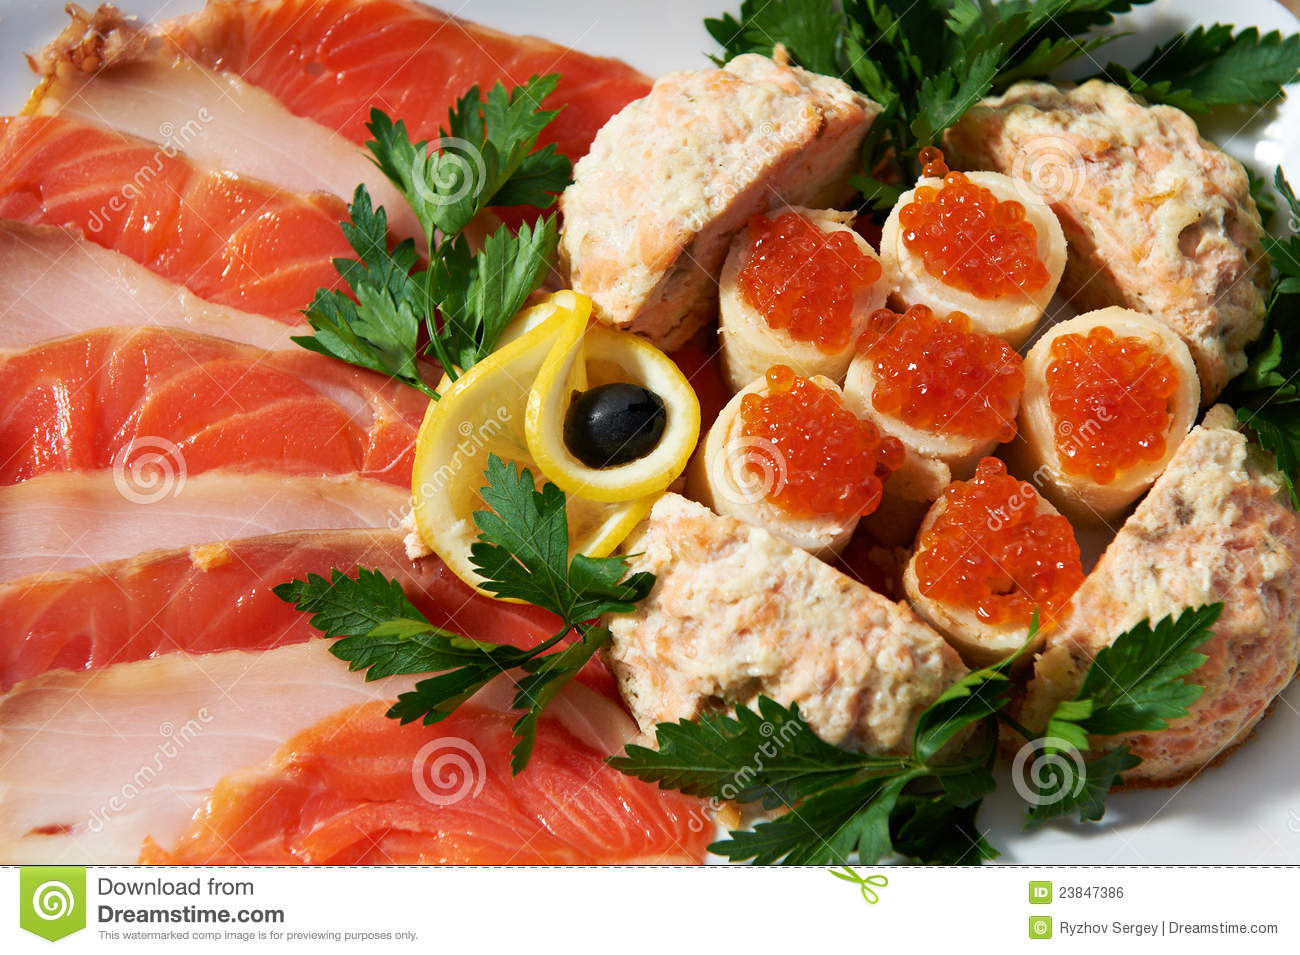 Dish with fish eggs and fish meat royalty free stock image for Is fish considered meat